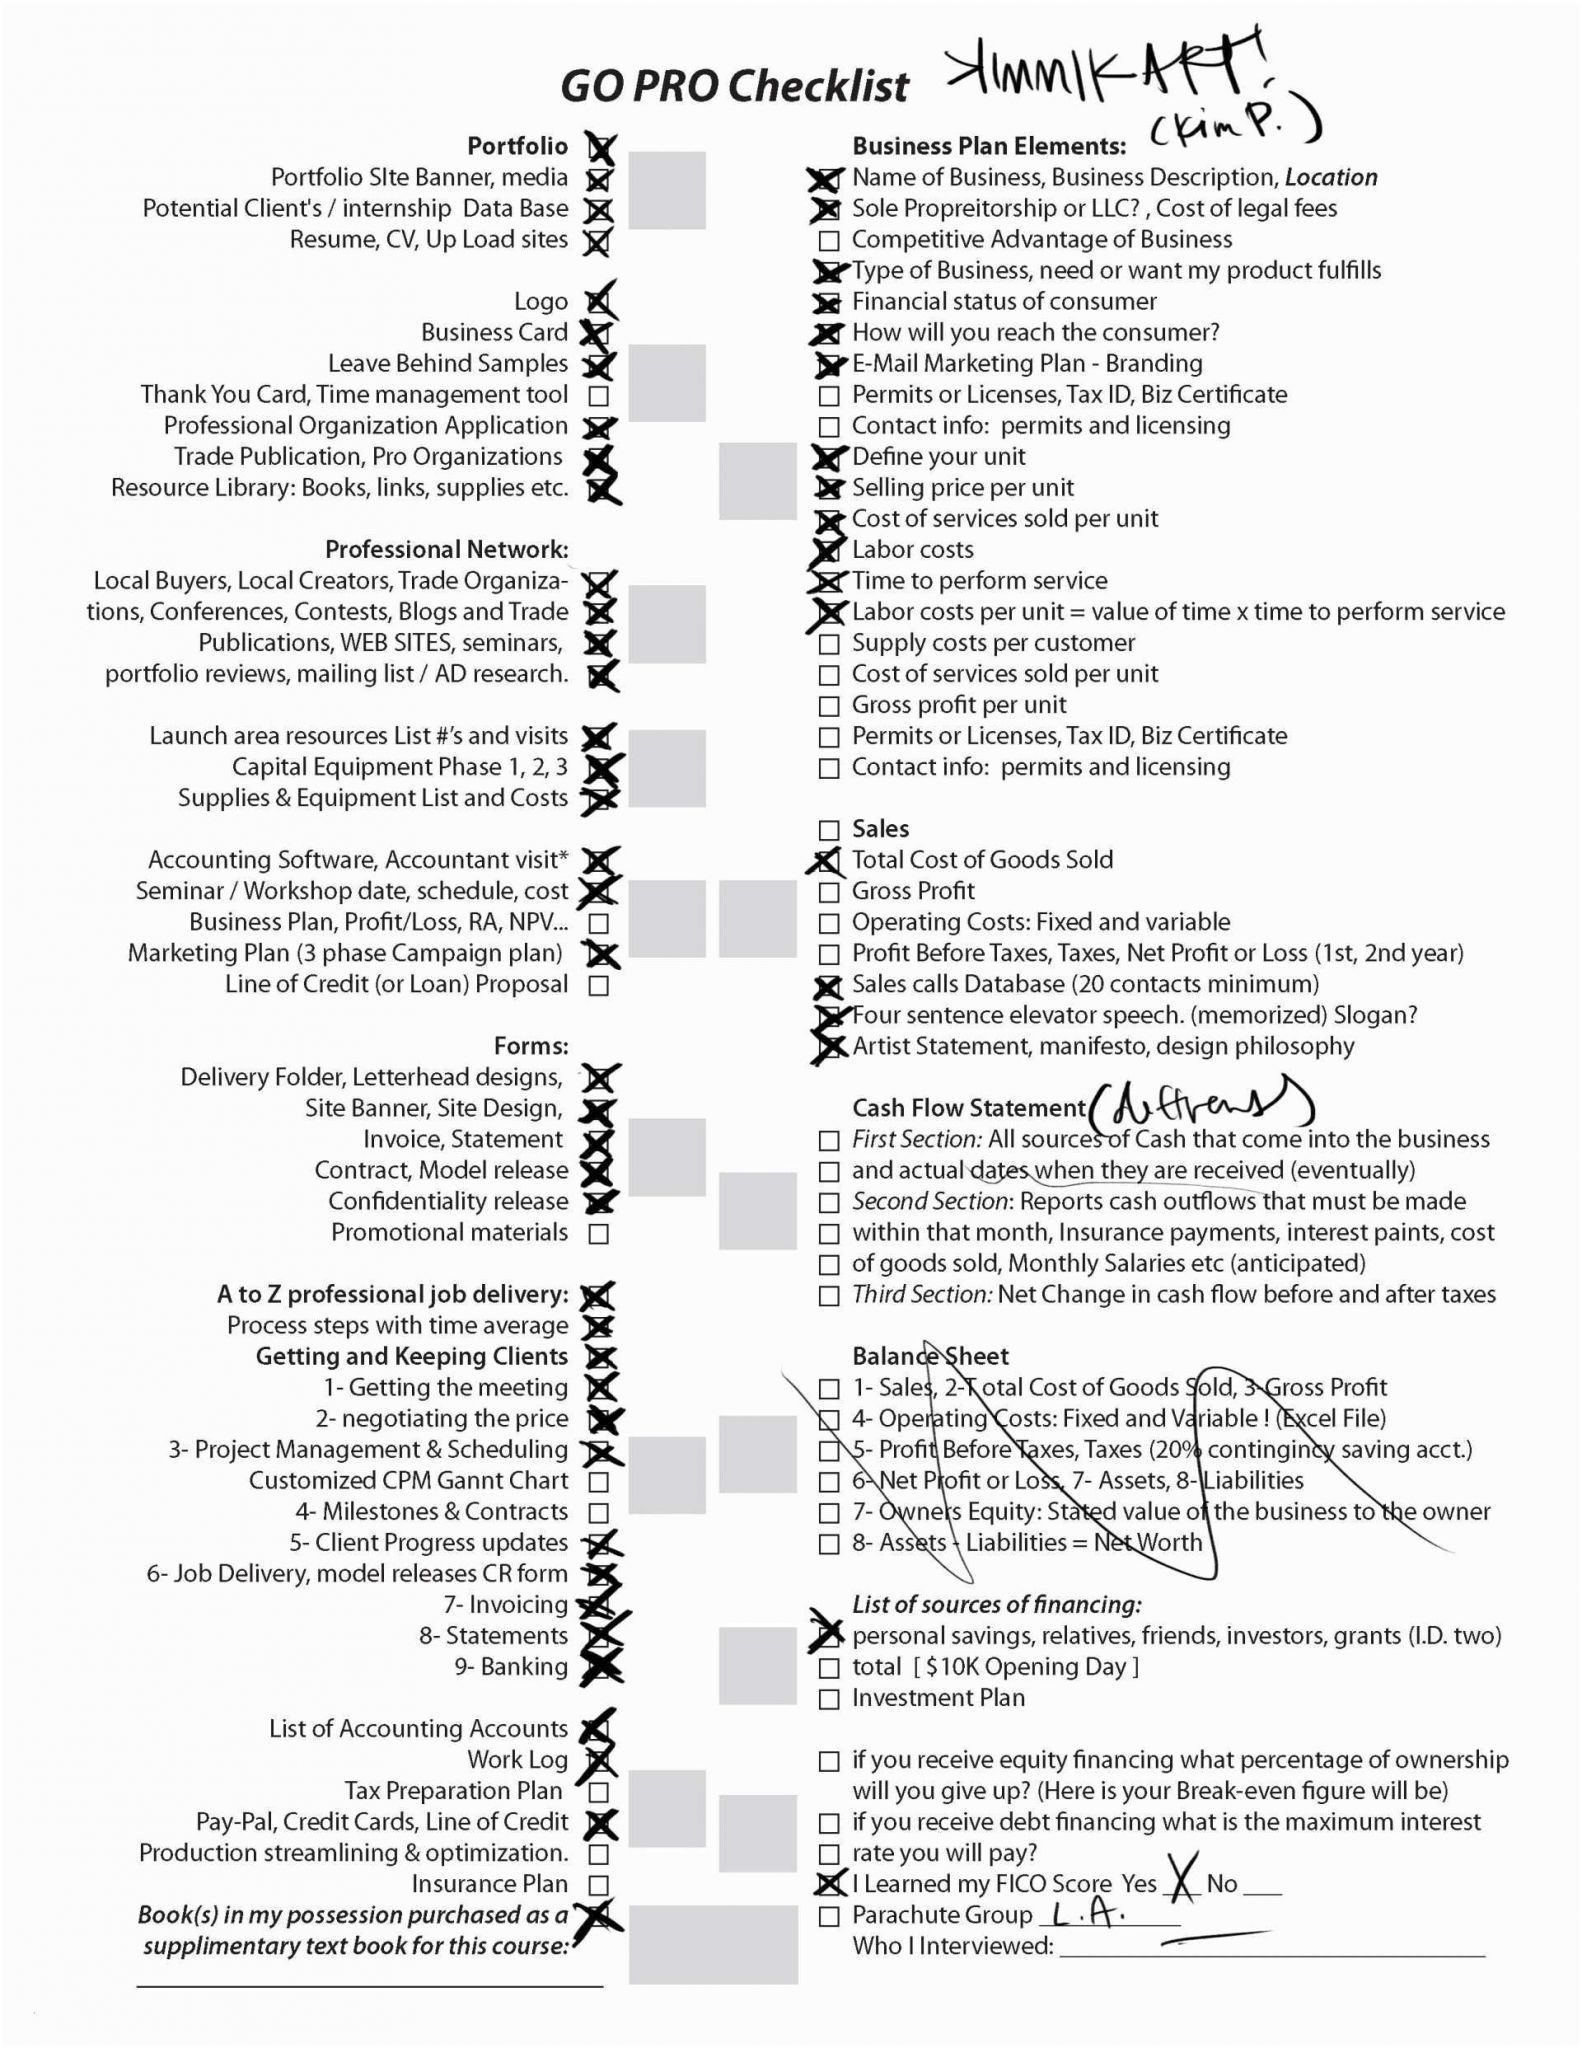 4 Guide Words Worksheets 3rd Grade In 2020 Business Plan Template Statement Template Free Math Worksheets